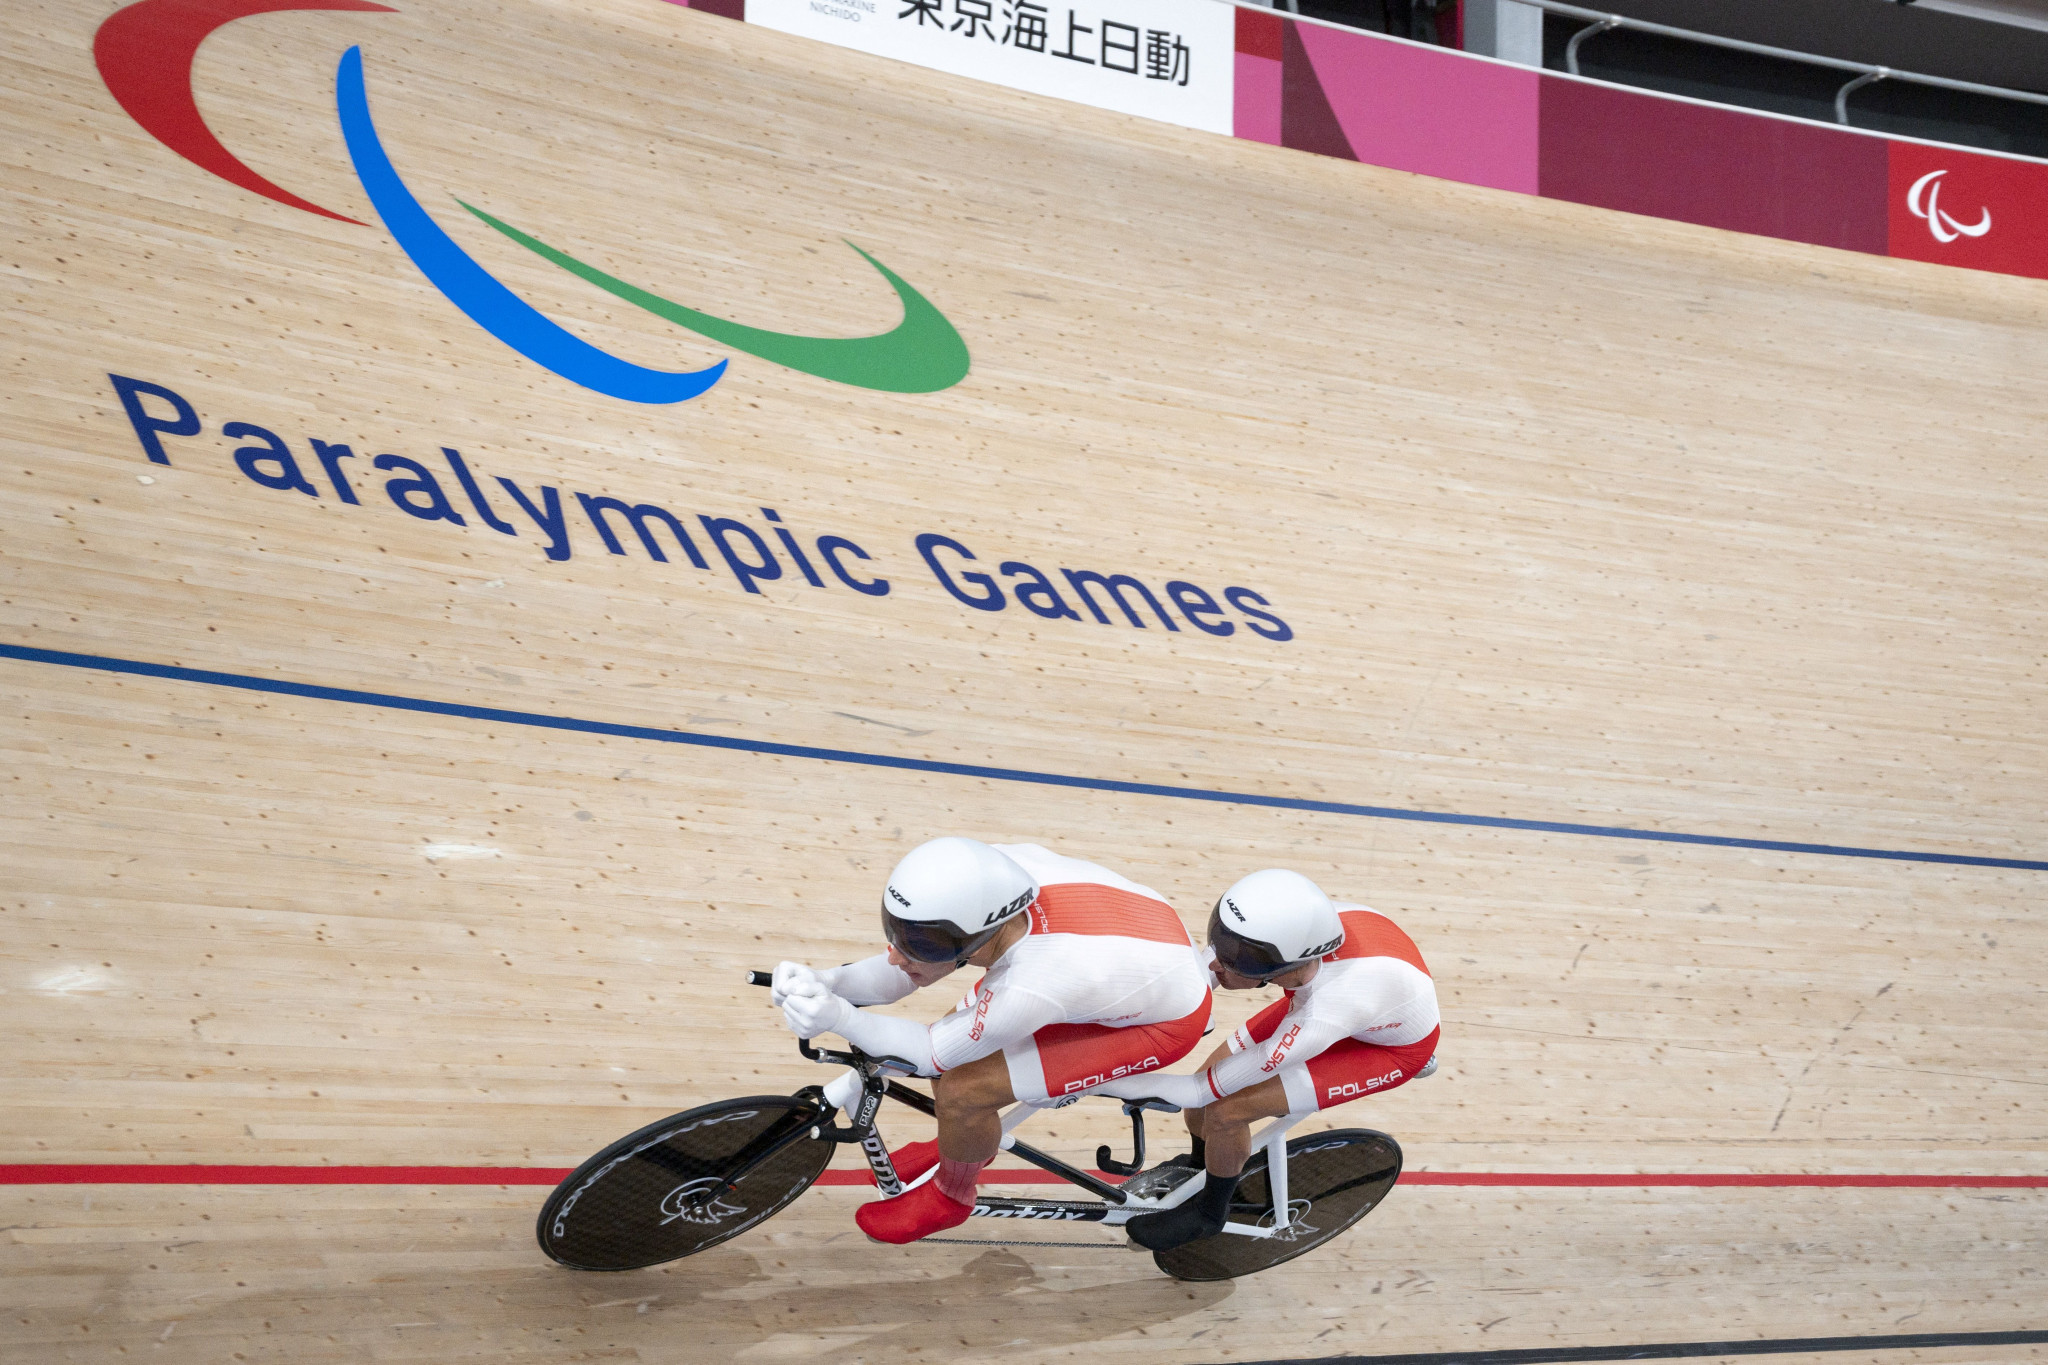 Tokyo 2020 Paralympic medallist Polak suspended for positive doping test